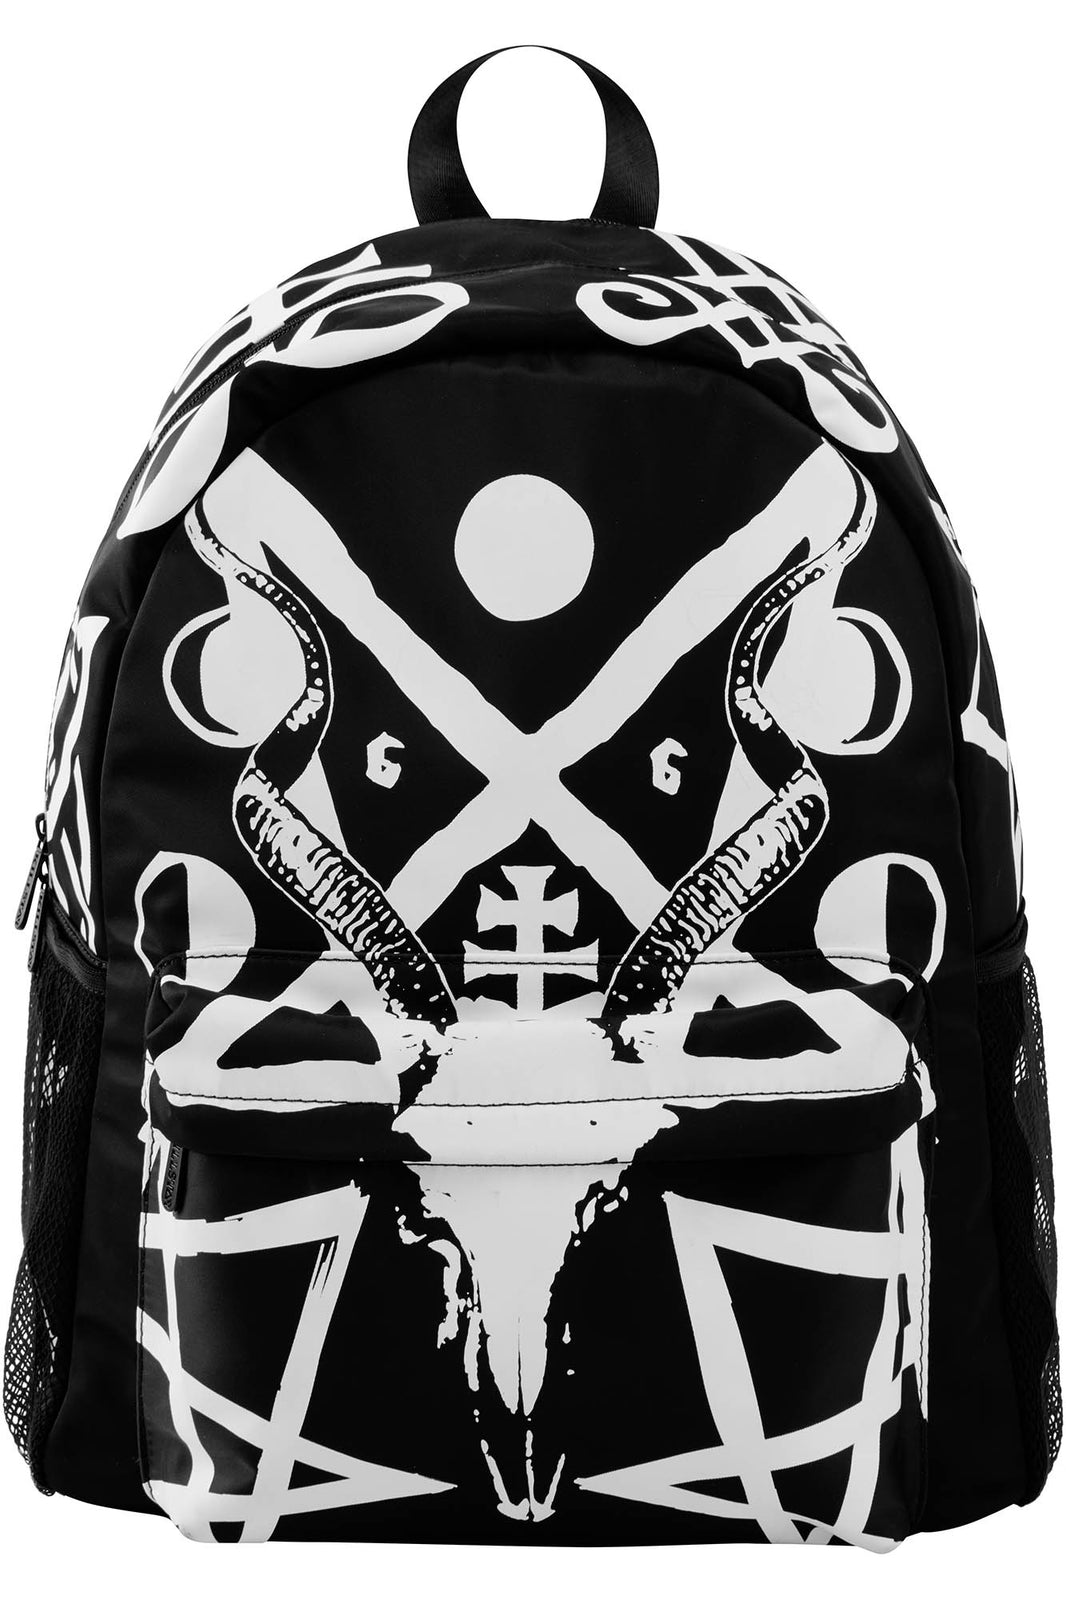 Cult Leader Backpack